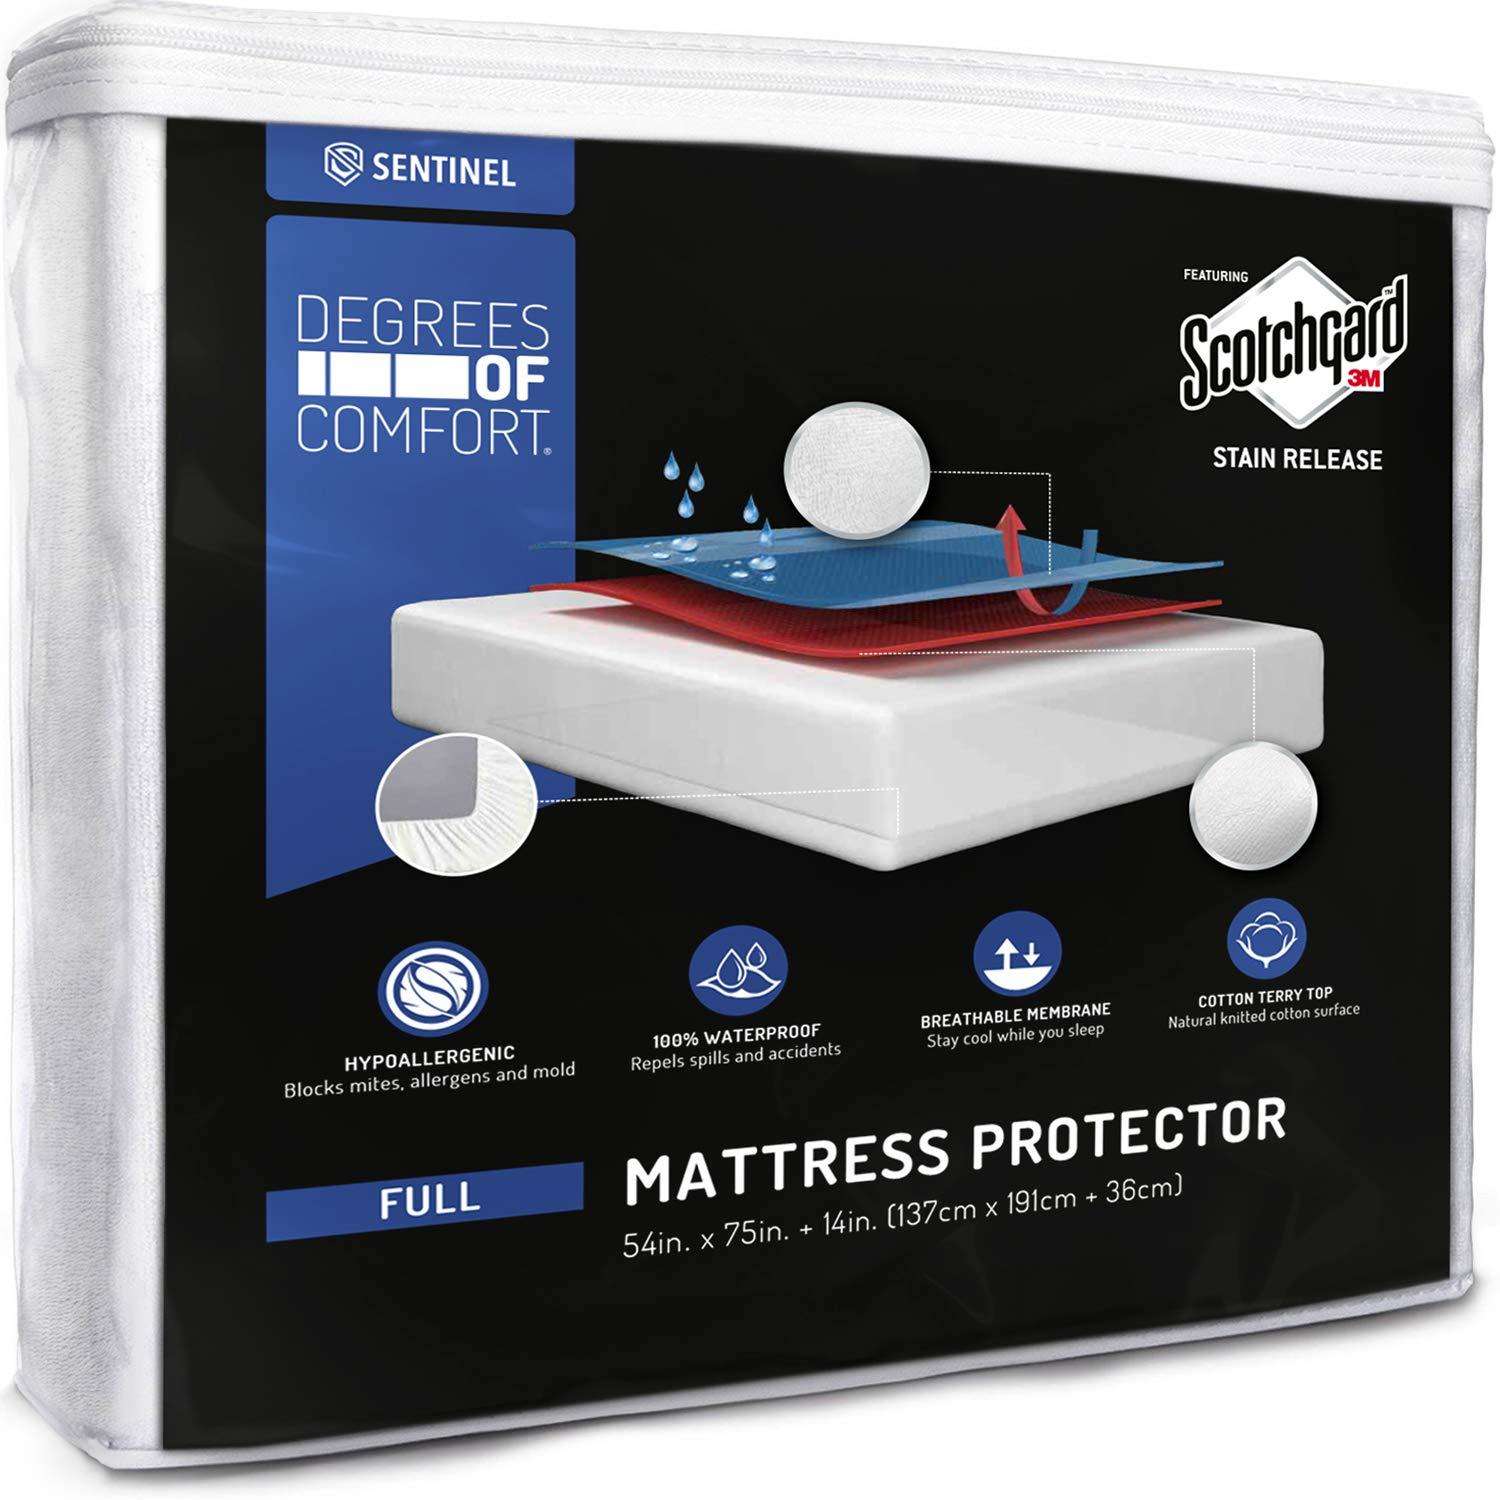 Full Size Hypoallergenic Waterproof Mattress Protector | Breathable Cotton Terry Fitted Cover with 3M Scotchgard Stain Release Technology | Urine and Spill Protection